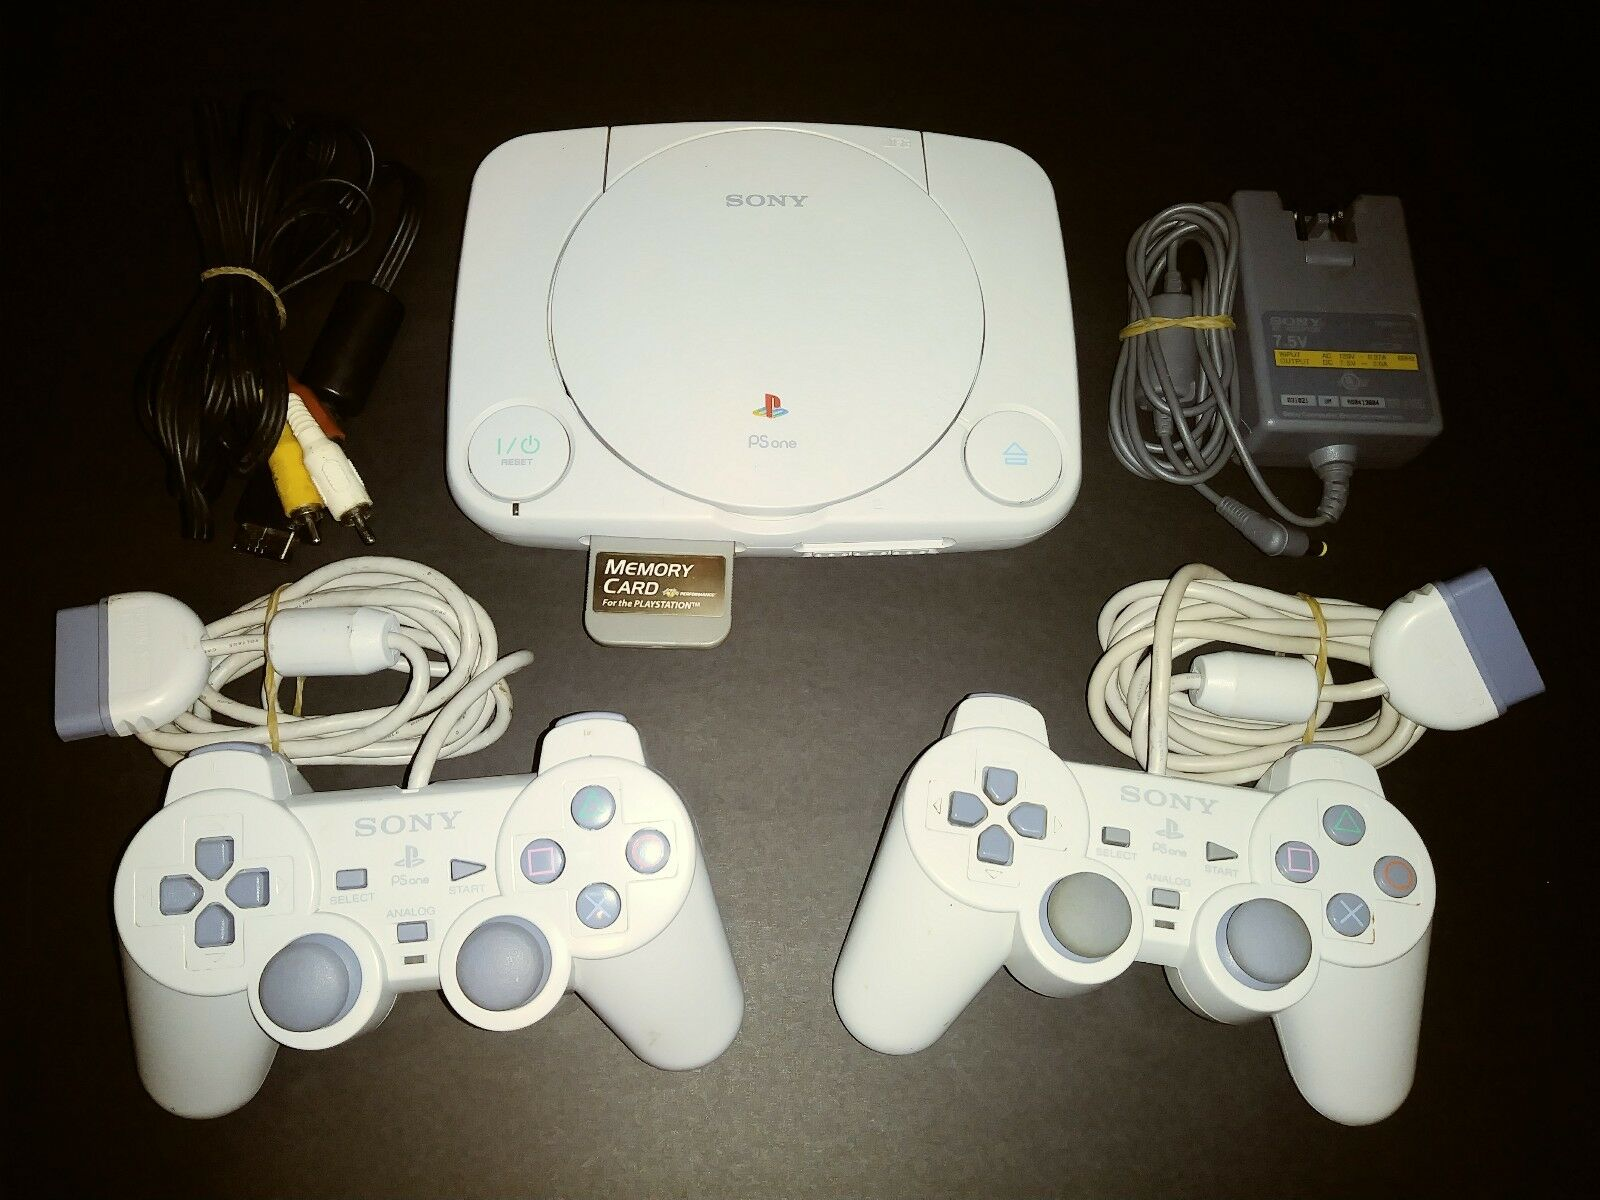 Sony Psone Playstation 1 Ps1 Slim Mini Console Cleaned Tested Very 4 500gb Hits Bundle Jet Black Region 3 Of 9 See More